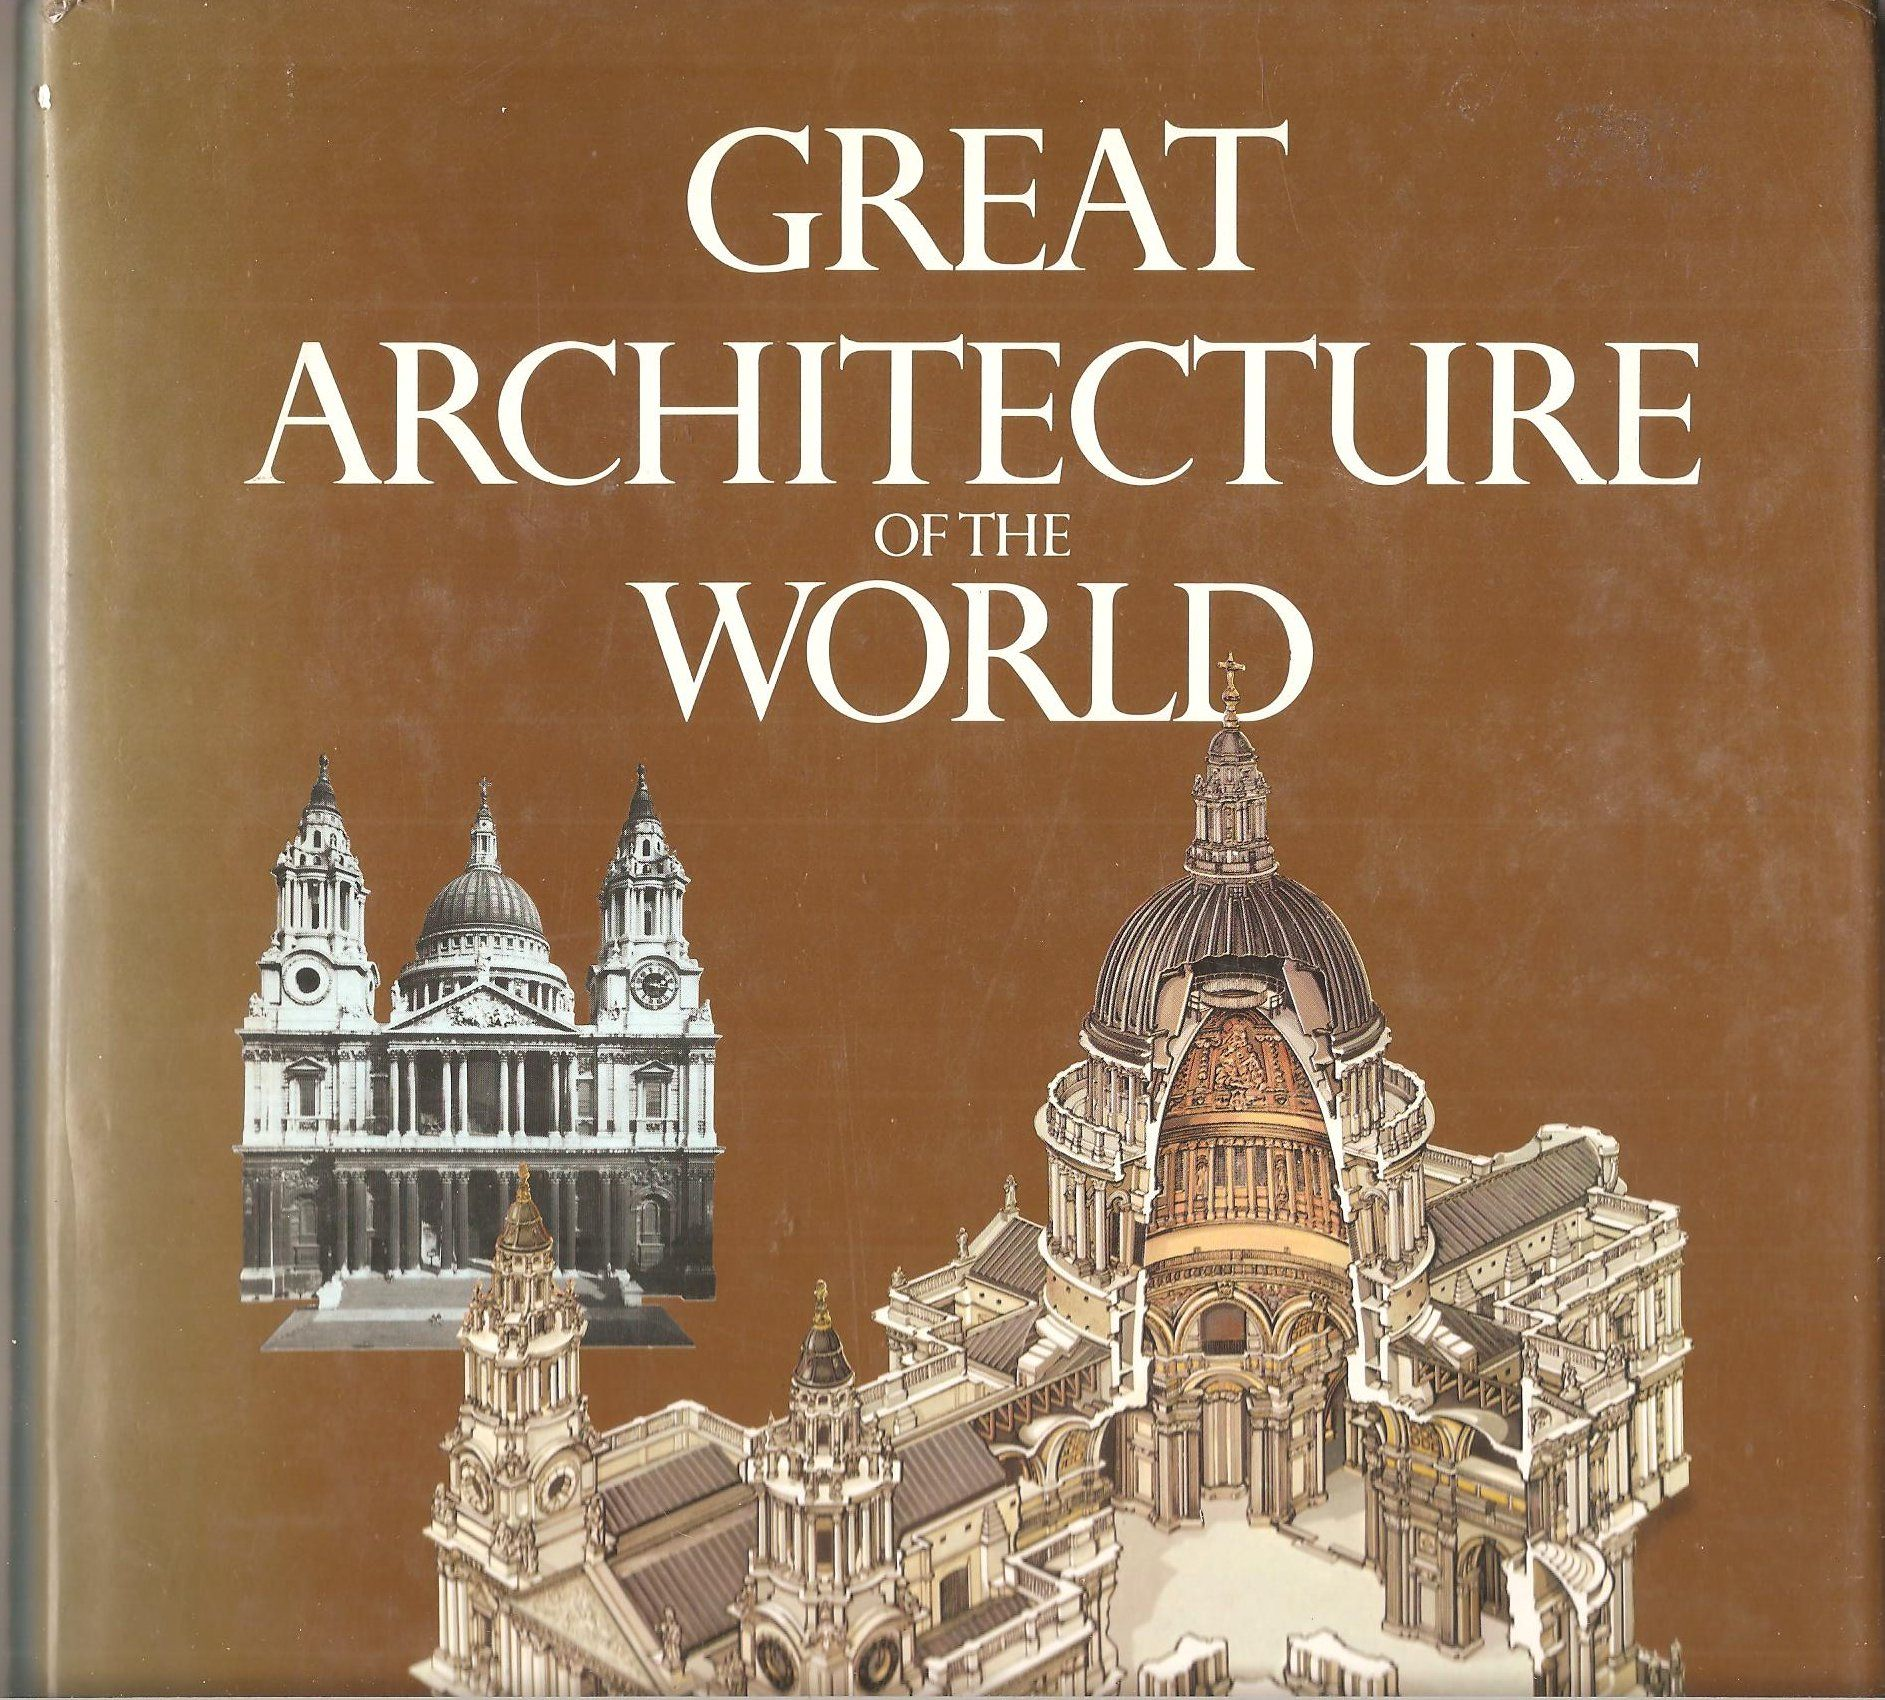 an analysis of john julius norwichs book great architecture of the world Buy great architecture of the world by john julius (ed) norwich (isbn: ) from amazon's book store everyday low prices and free delivery on eligible orders.